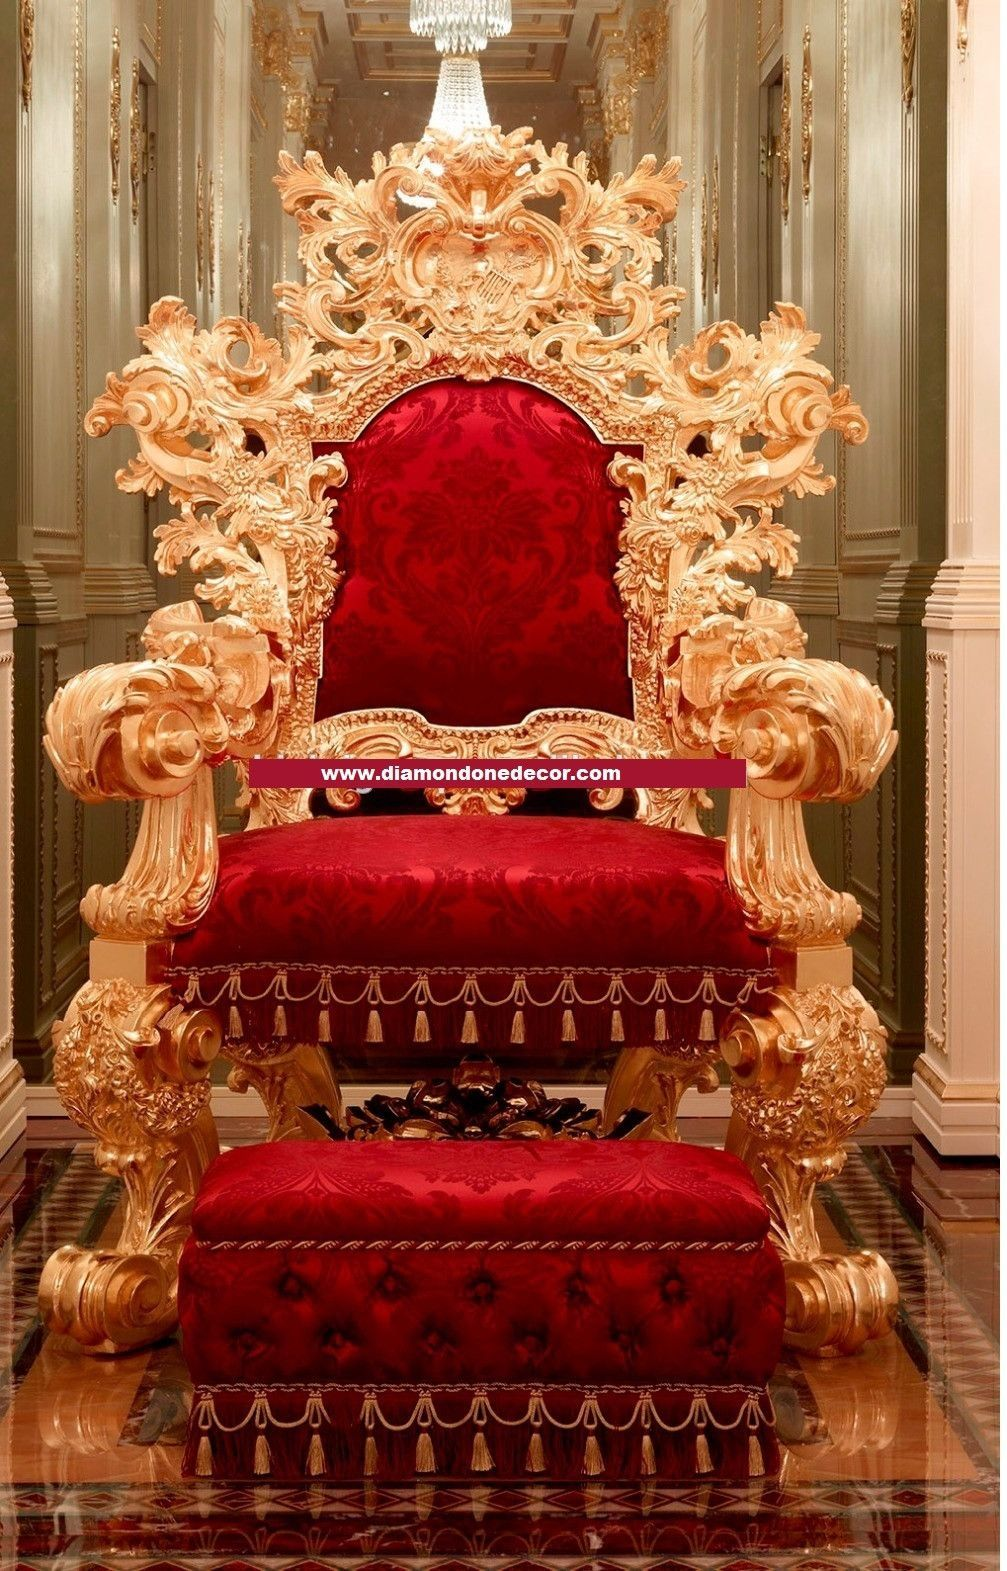 Amazing Baroque French Reprorduction Louis XVI Rococo Throne Wedding Chair